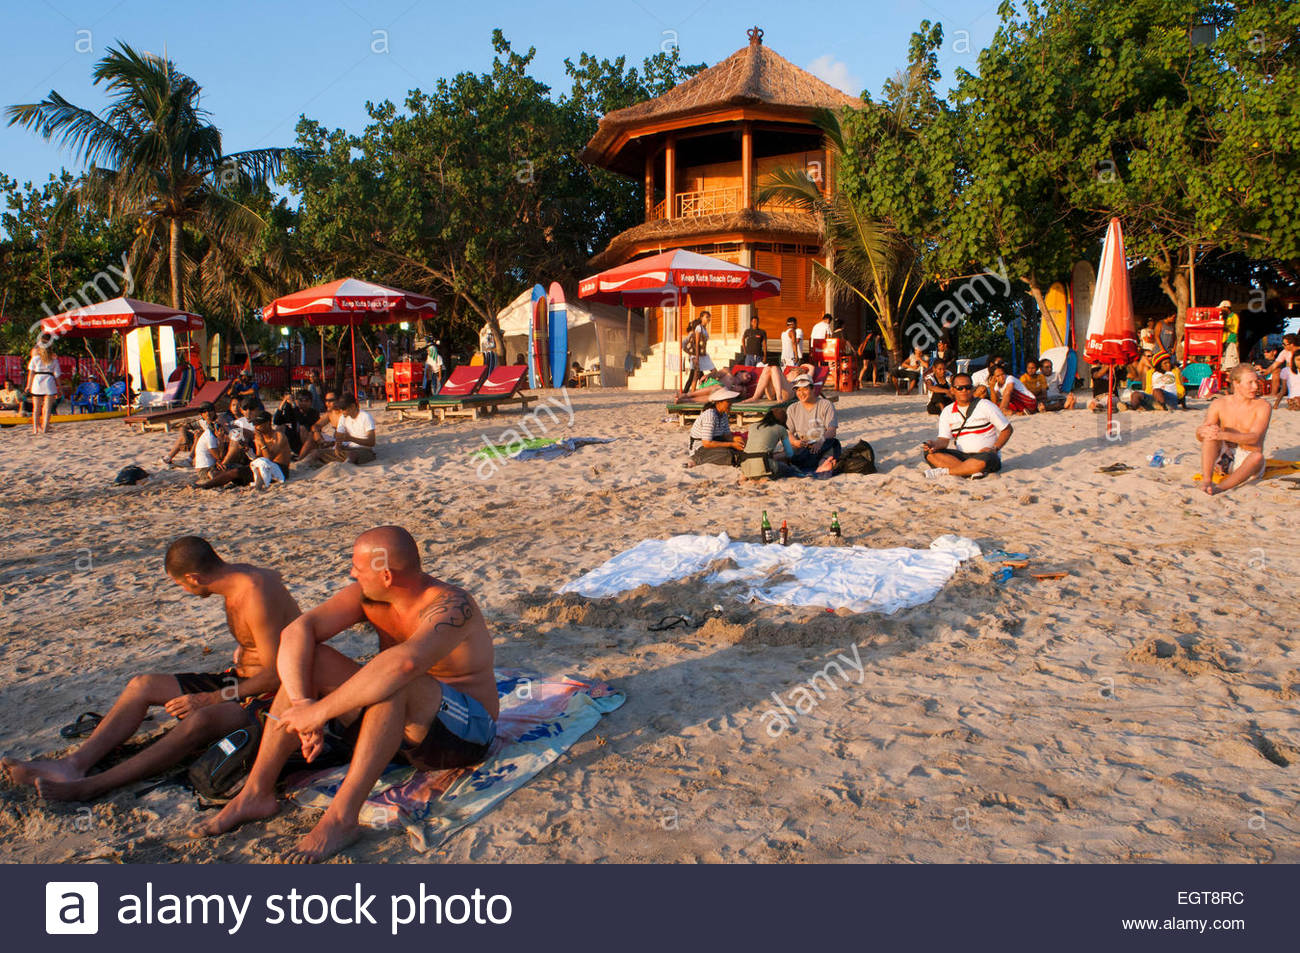 Beach of Kuta at sunset. Surfing lessons. Bali. Kuta is a coastal town in the south of the island of Lombok in Indonesia. - Stock Image